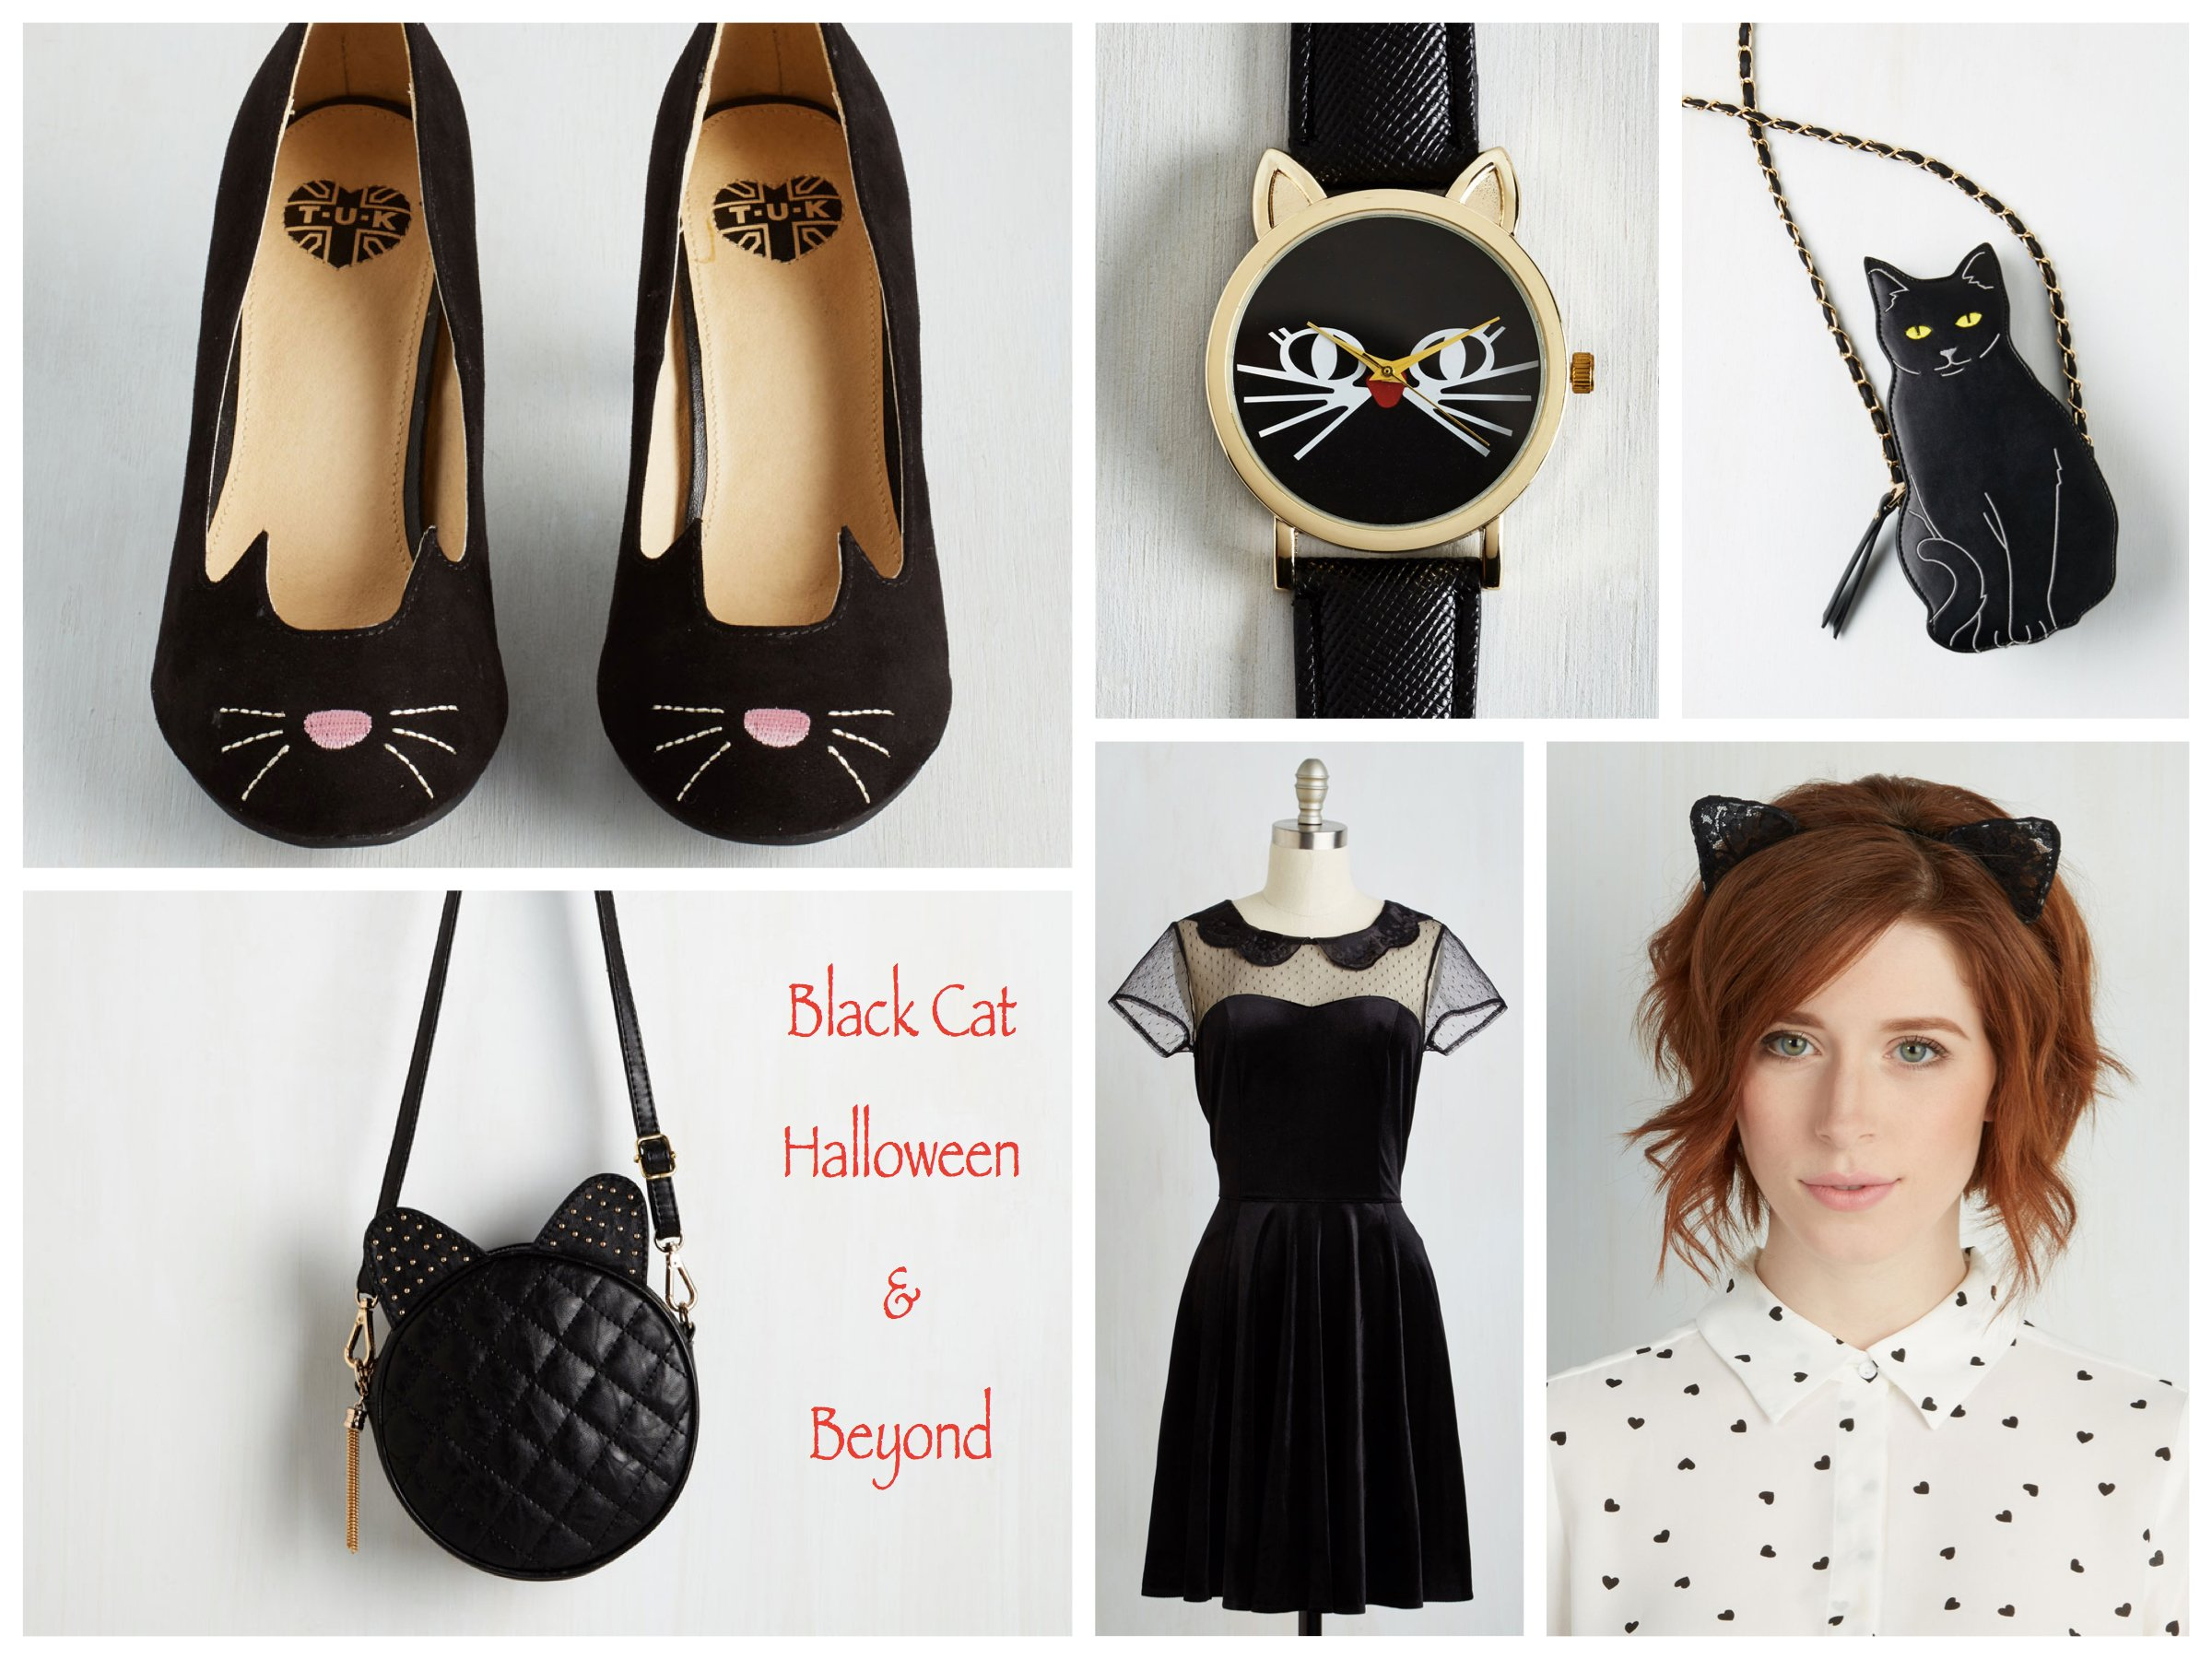 Little Black Dress + Black Cat Accessories for Halloween & Beyond, Halloween Costume Trend